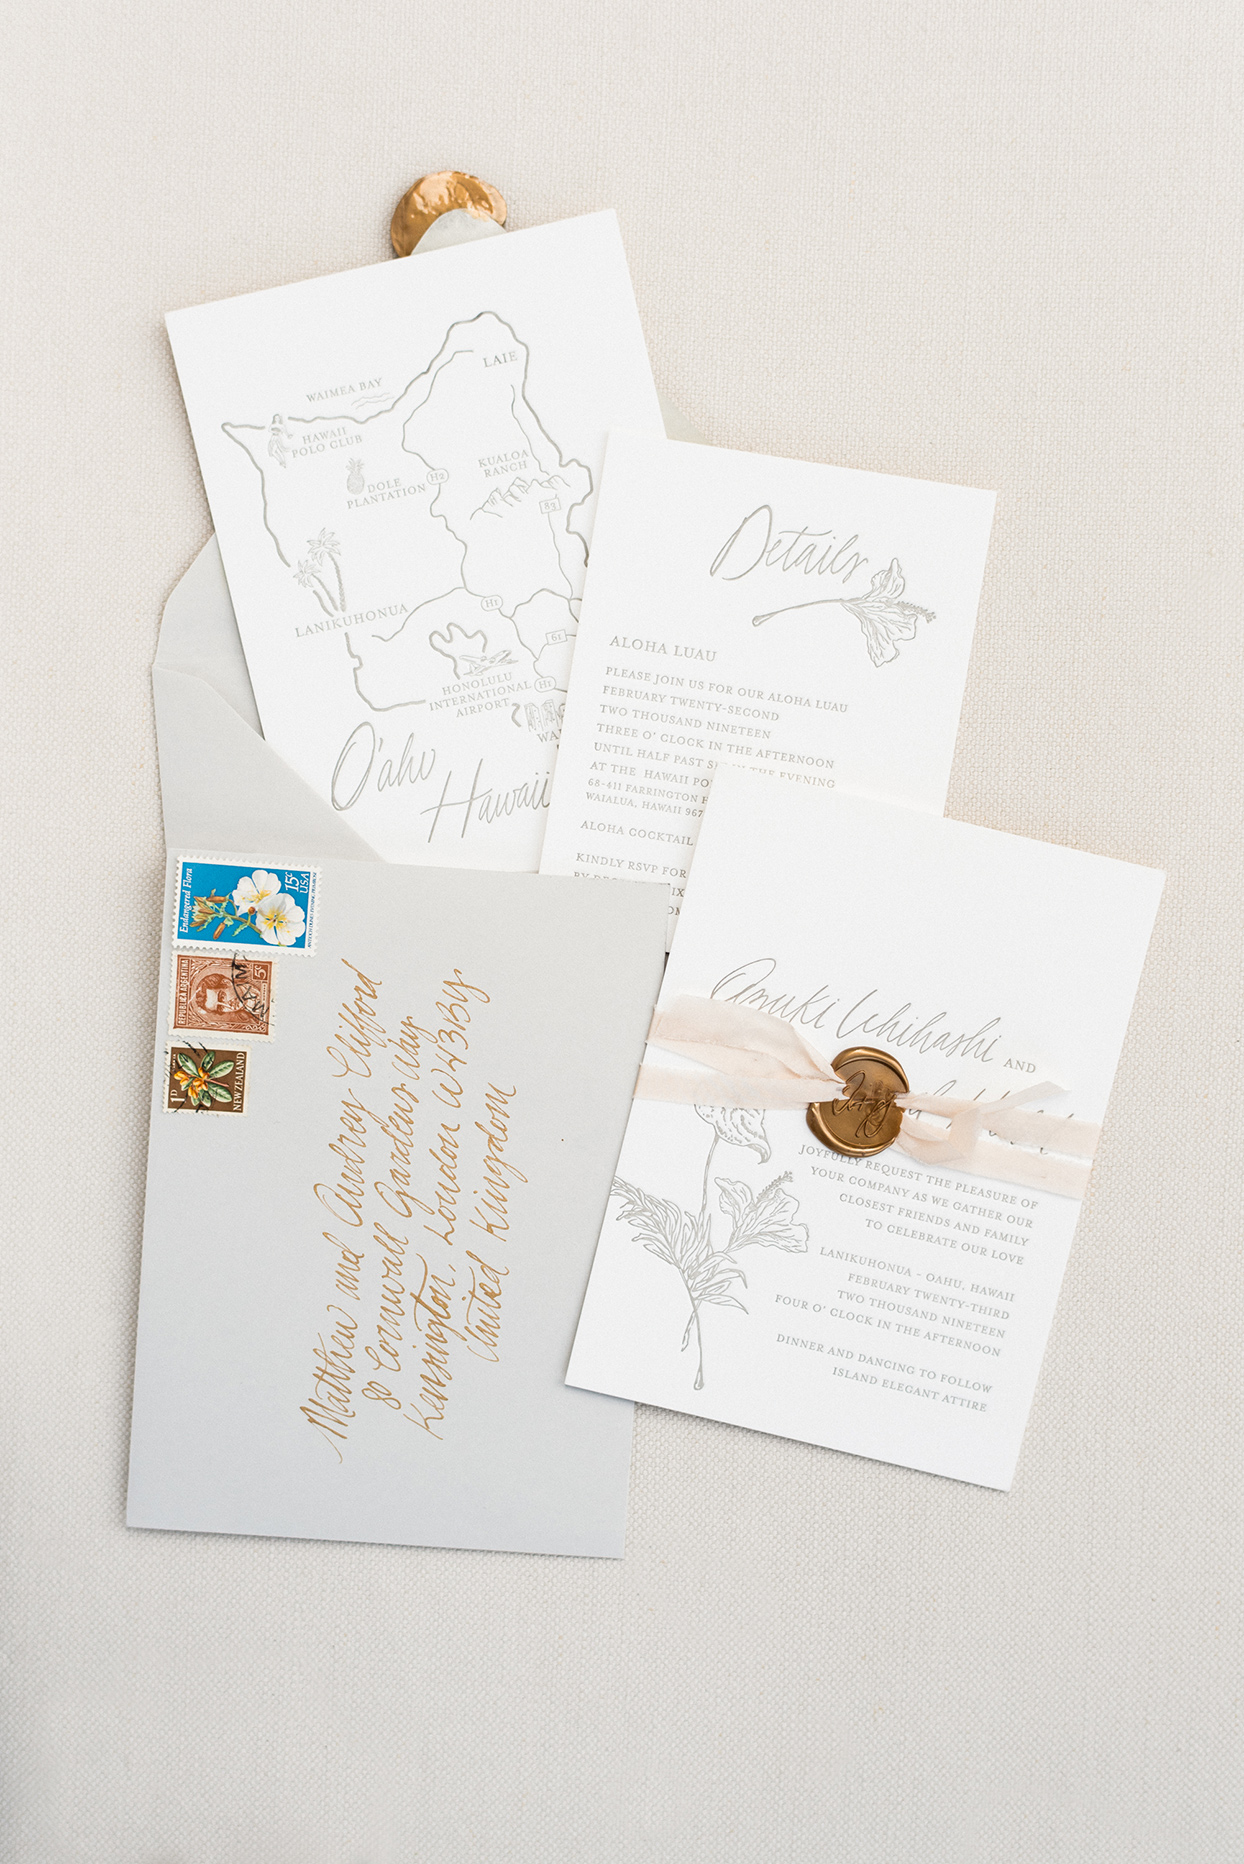 azuki sam wedding invites neutral colors